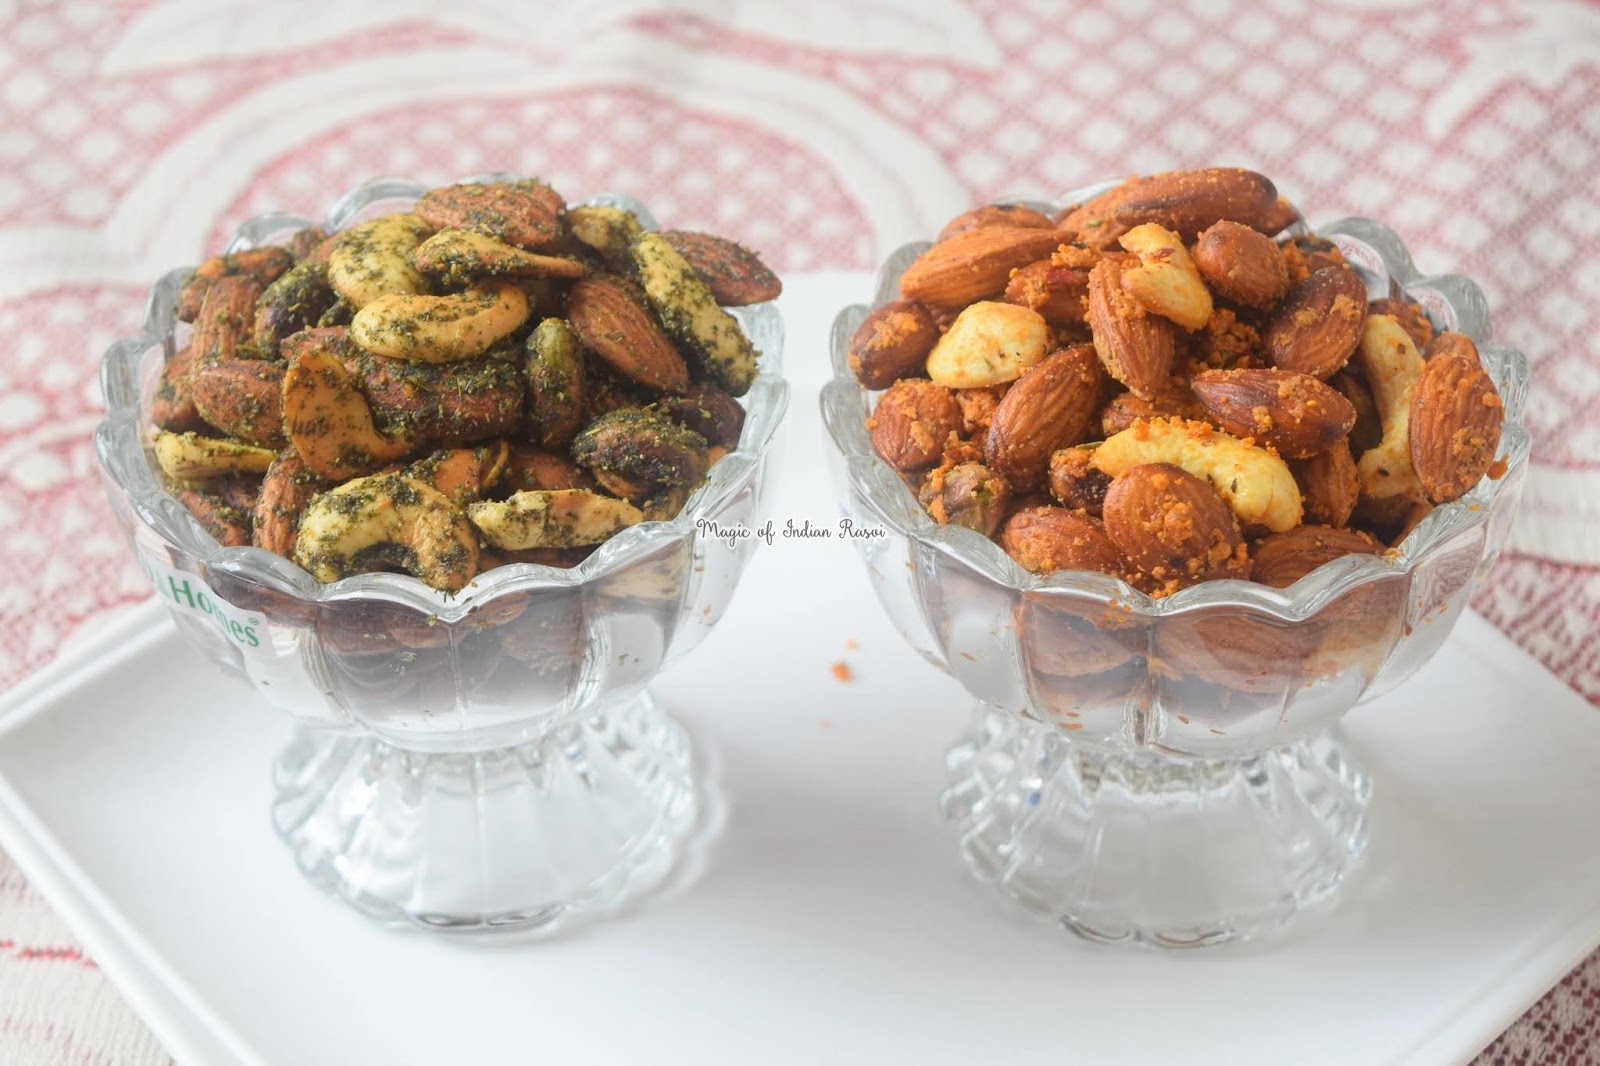 Masala Mint & Italian Herbs & Cheese Flavoured Dry Fruits Recipe - 4